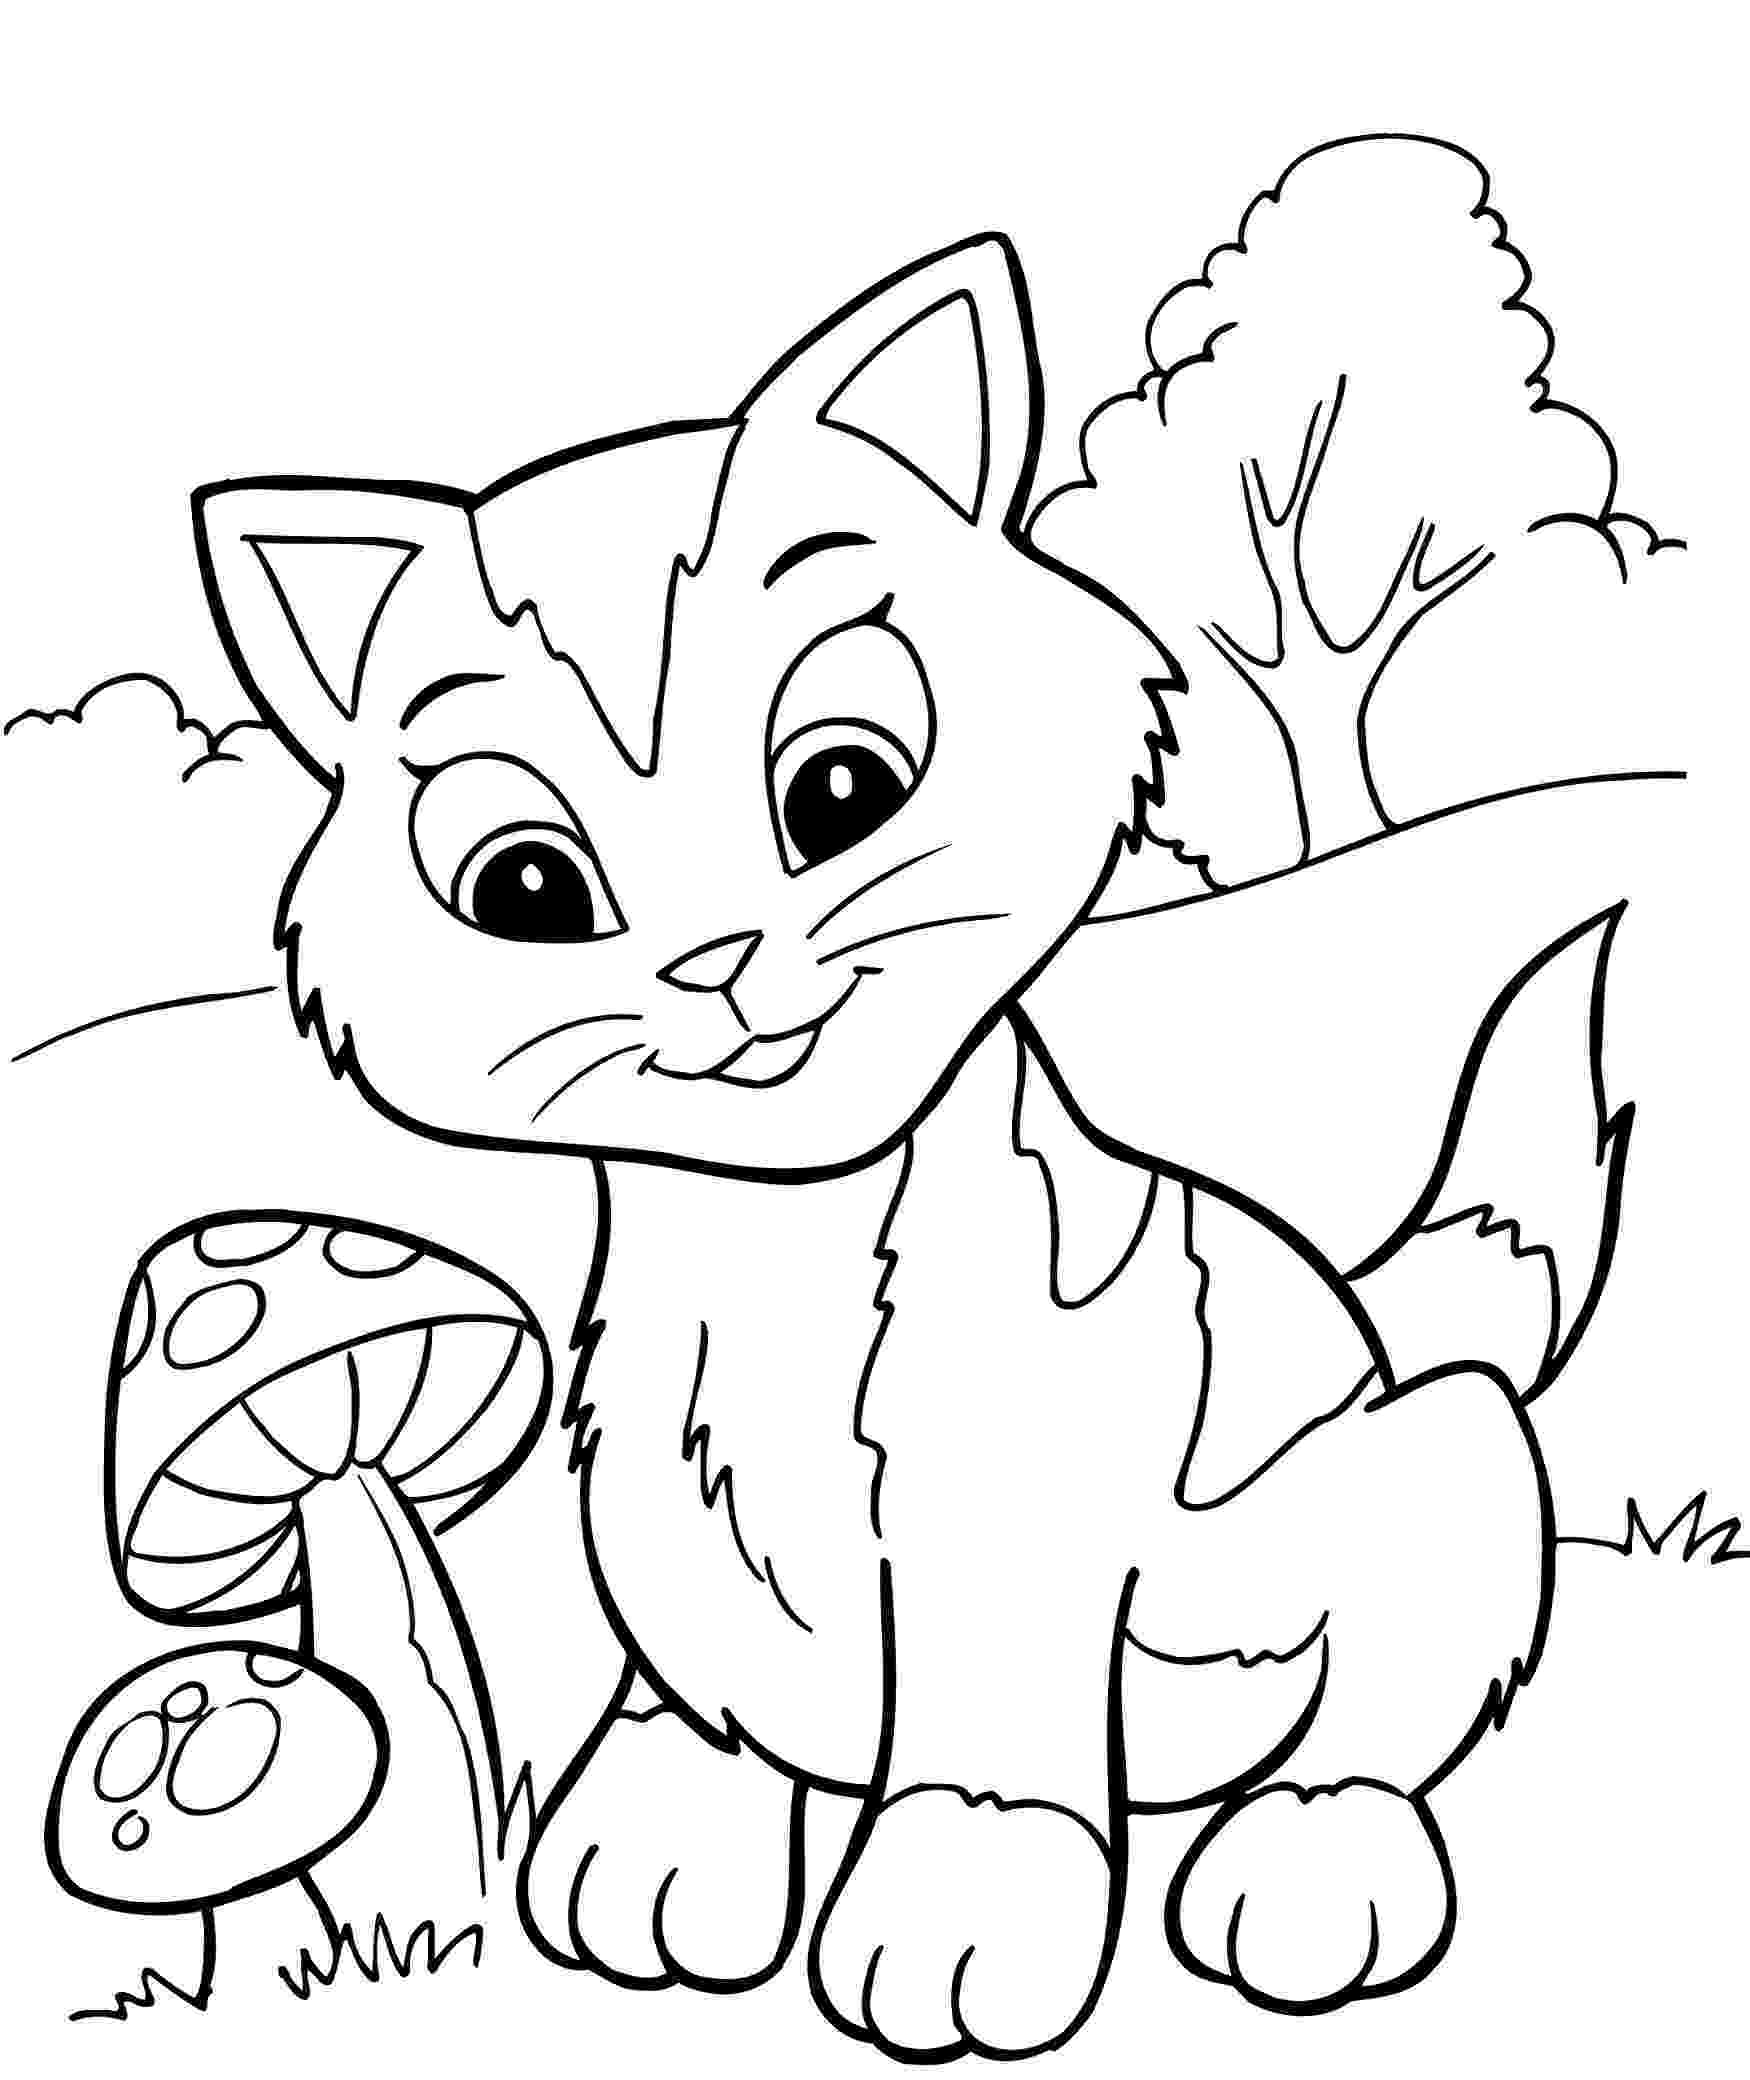 coloring pages pdf printable coloring book pages for kids gallery free coloring pdf pages